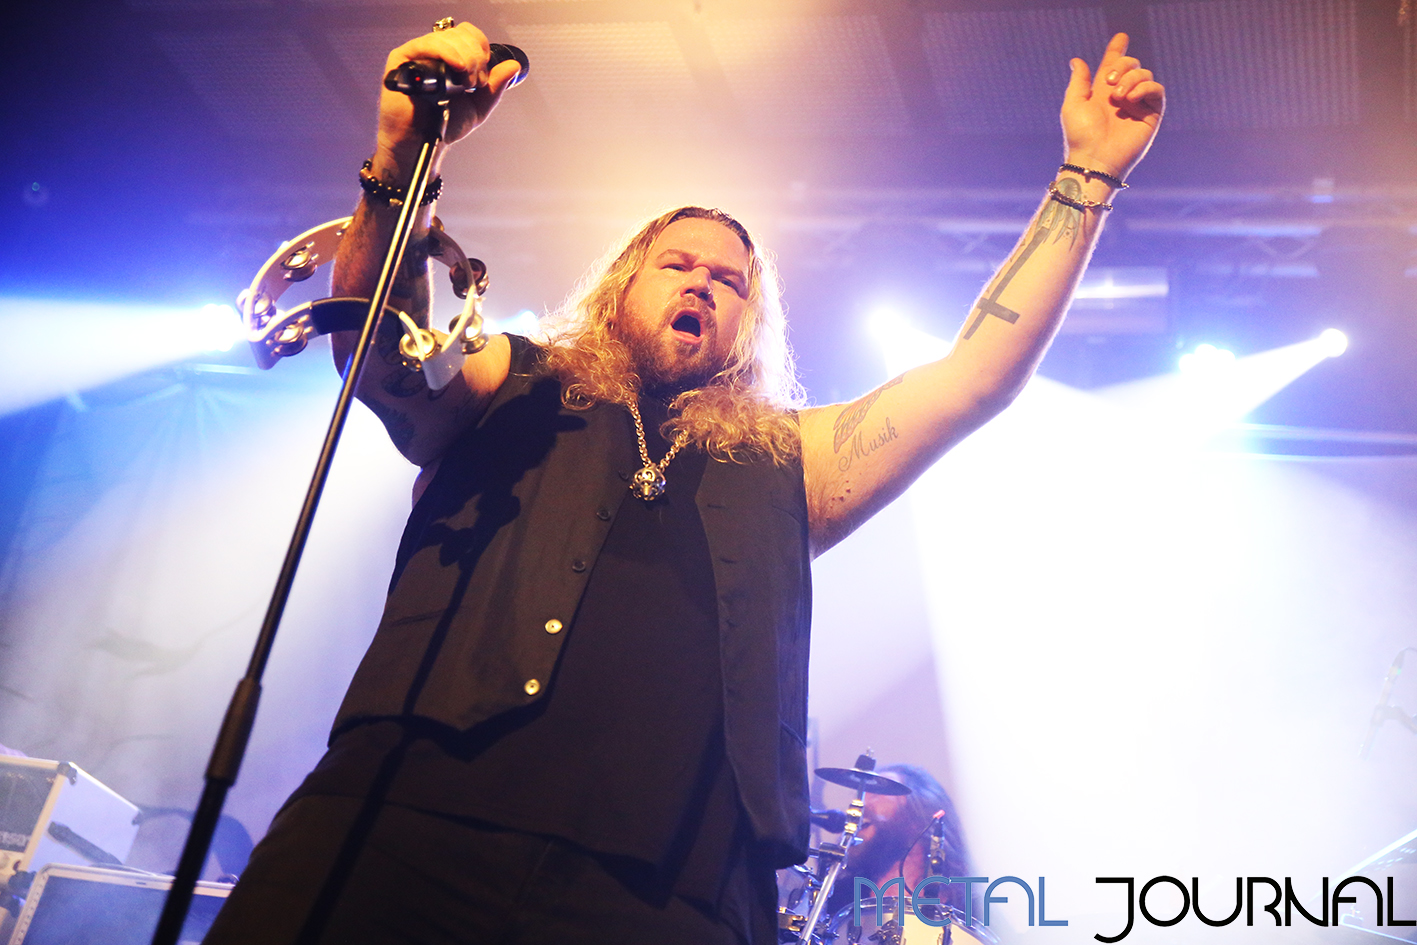 inglorious - metal journal 2019 pic 9